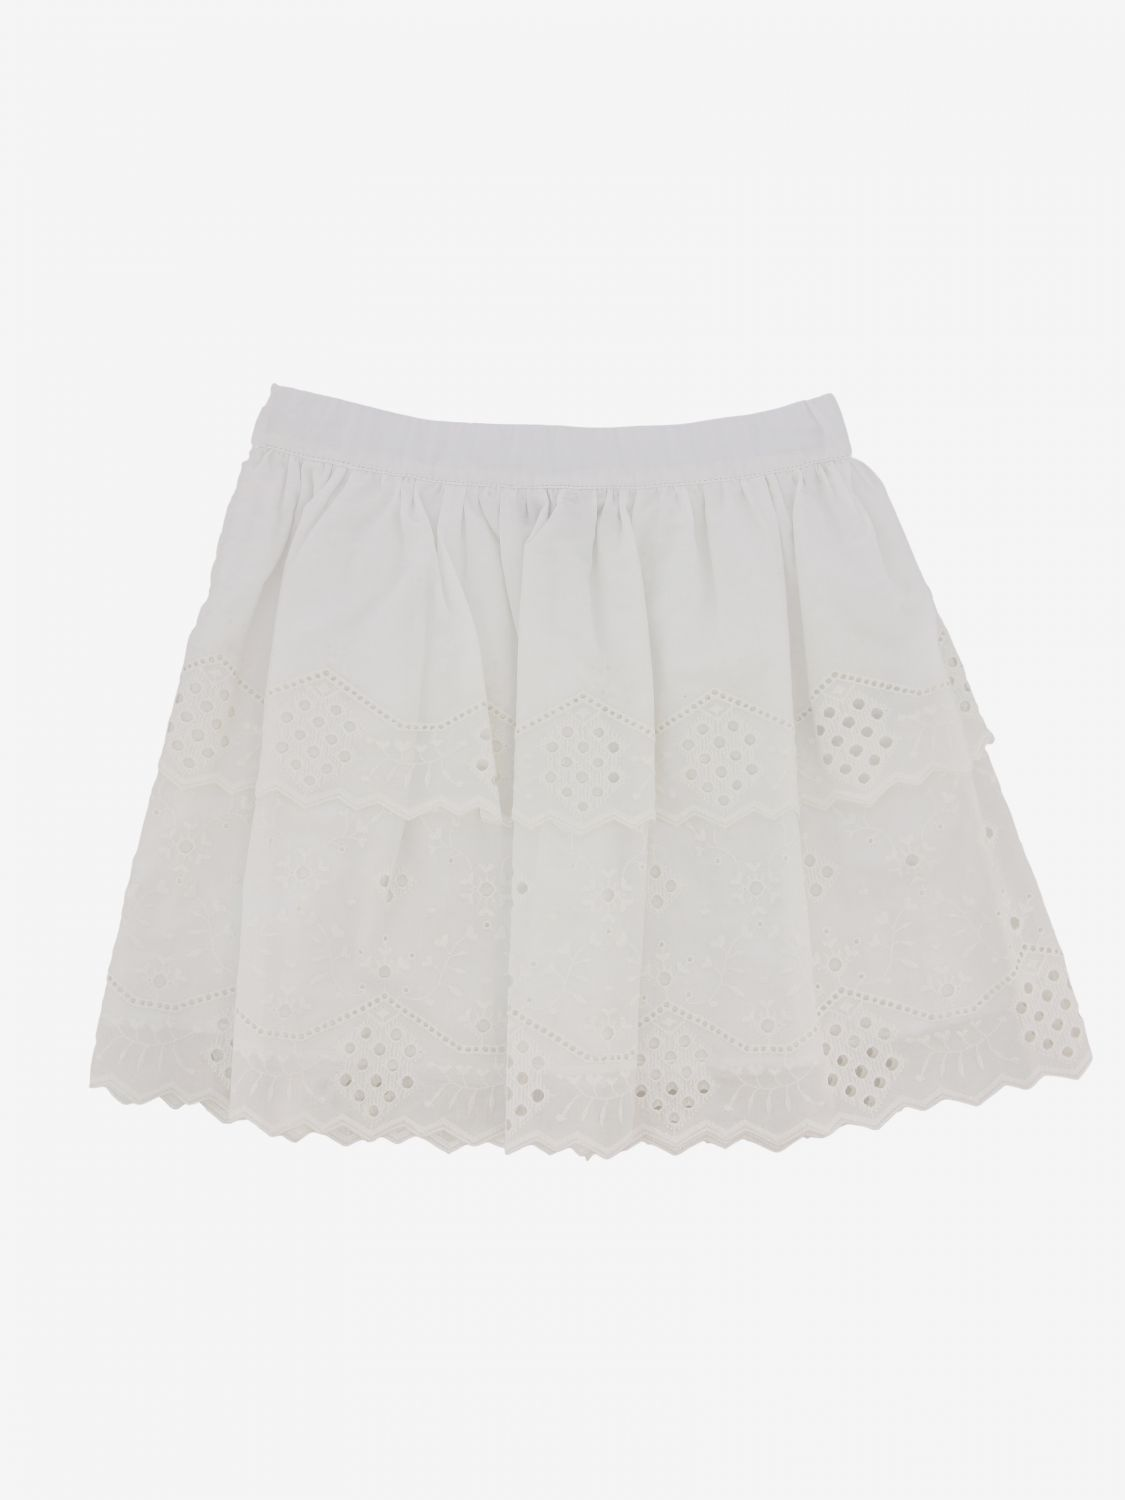 Gonna Alberta Ferretti Junior: Gonna Alberta Ferretti Junior in Sangallo bianco 2